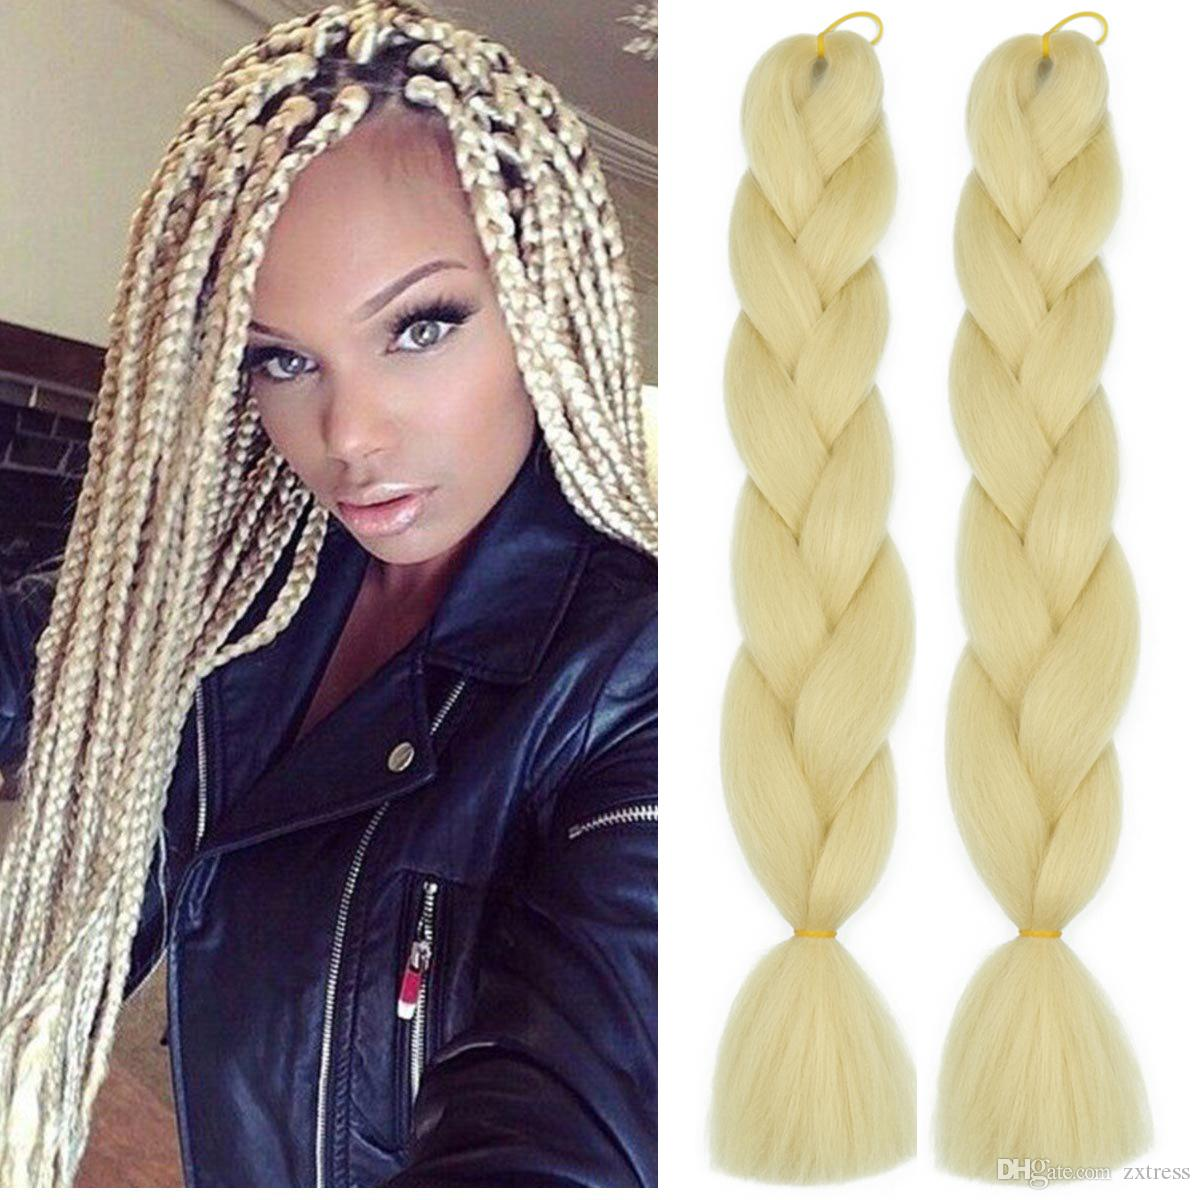 ZXTRESS Women 24inch Crochet Braids Twist Hair Bulks Box Braids 100g/pc Jumbo Braids Blonde Synthetic Braiding Hair Extensions headwear